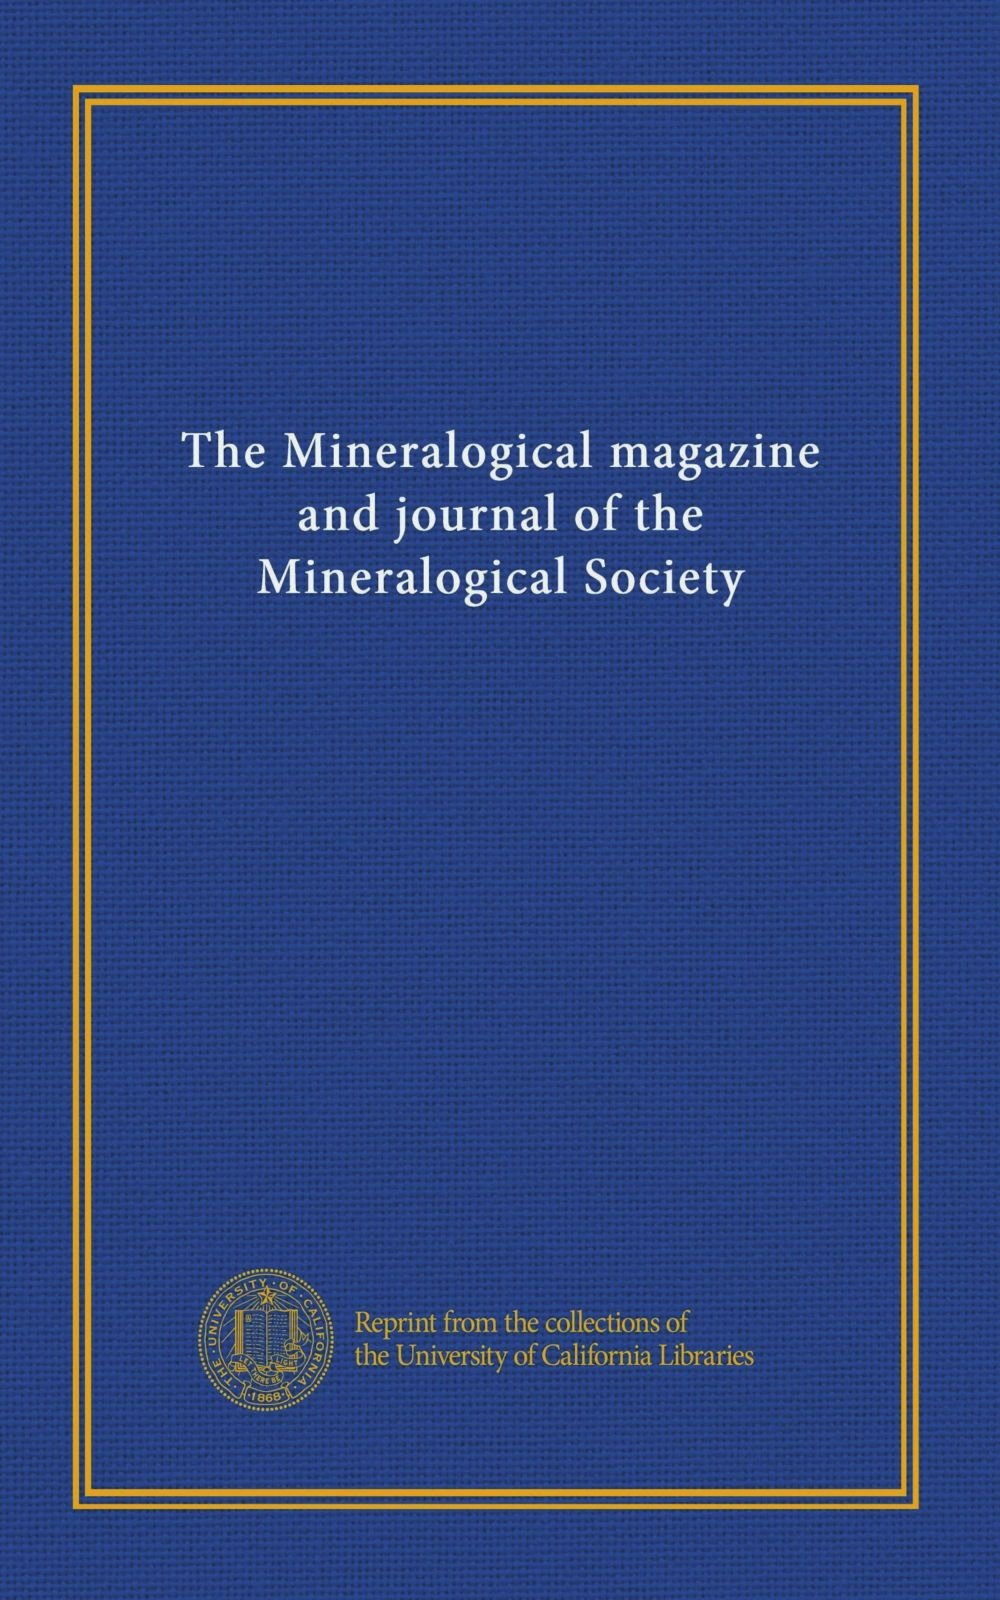 Download The Mineralogical magazine and journal of the Mineralogical Society (v.4 (1880-81)) PDF